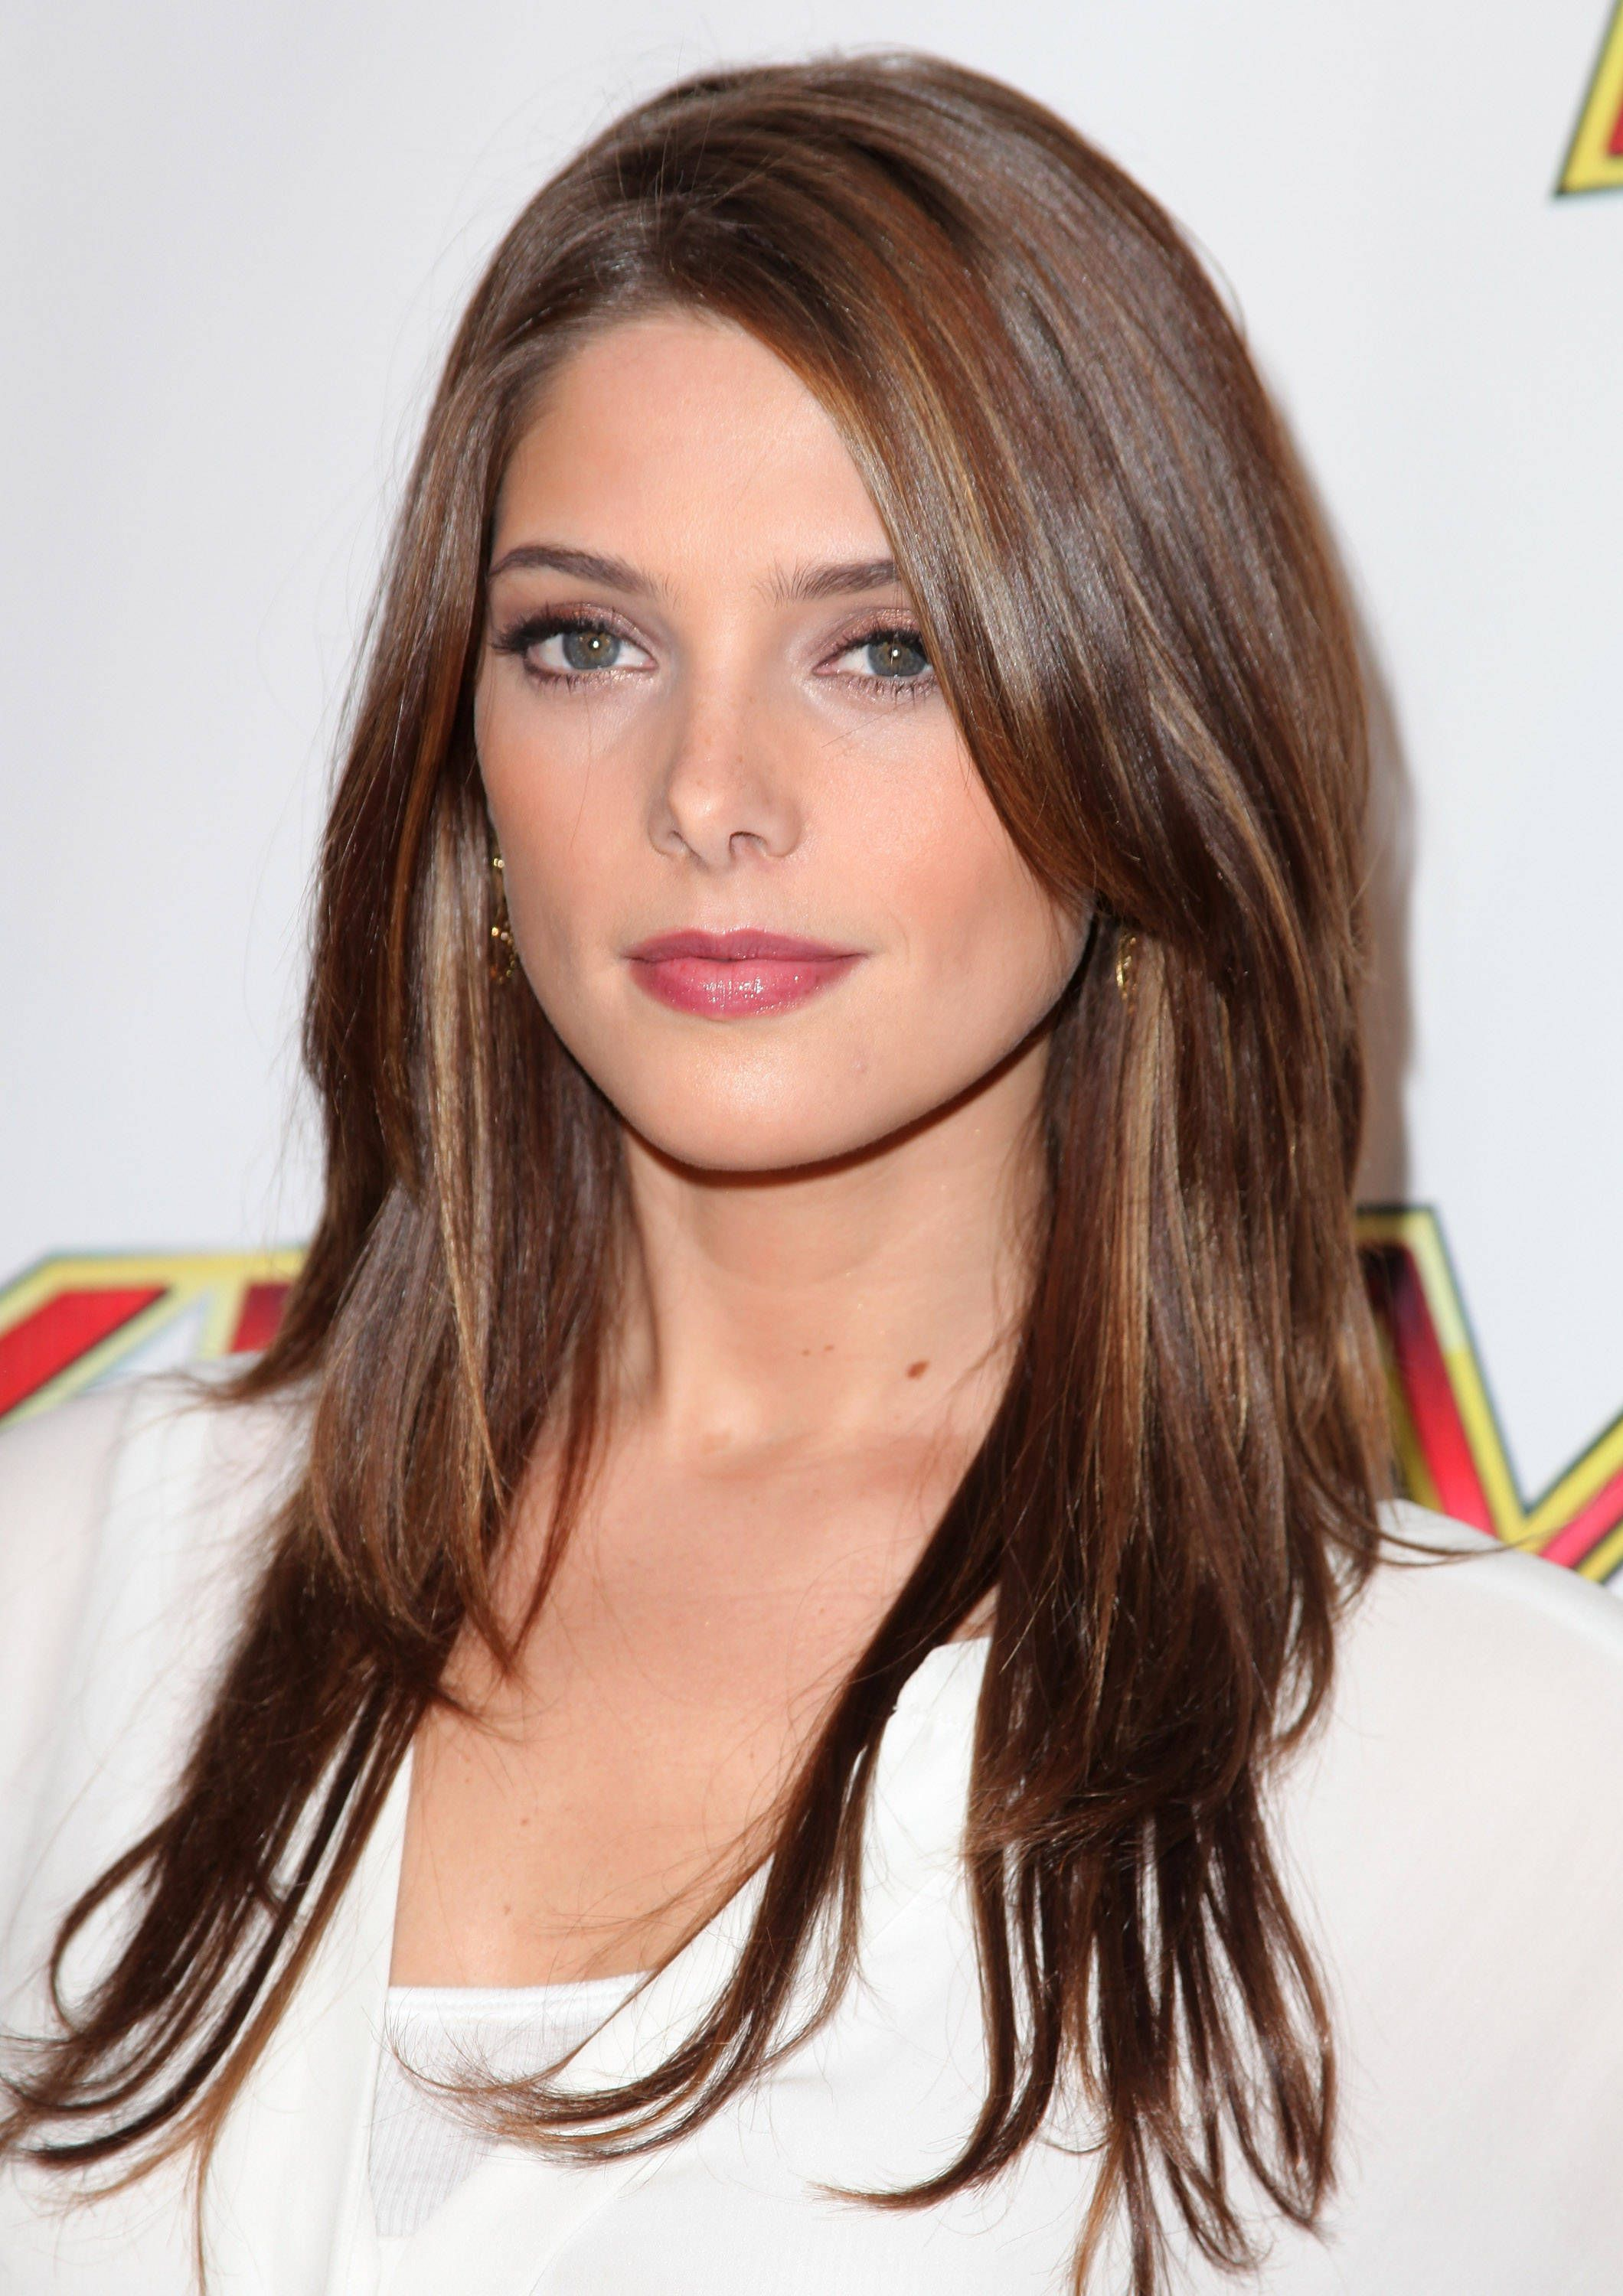 20 Hairstyles For Long Thin Hair The Best Celebrity That Make Look Thicker Fabulous Every Face Shape